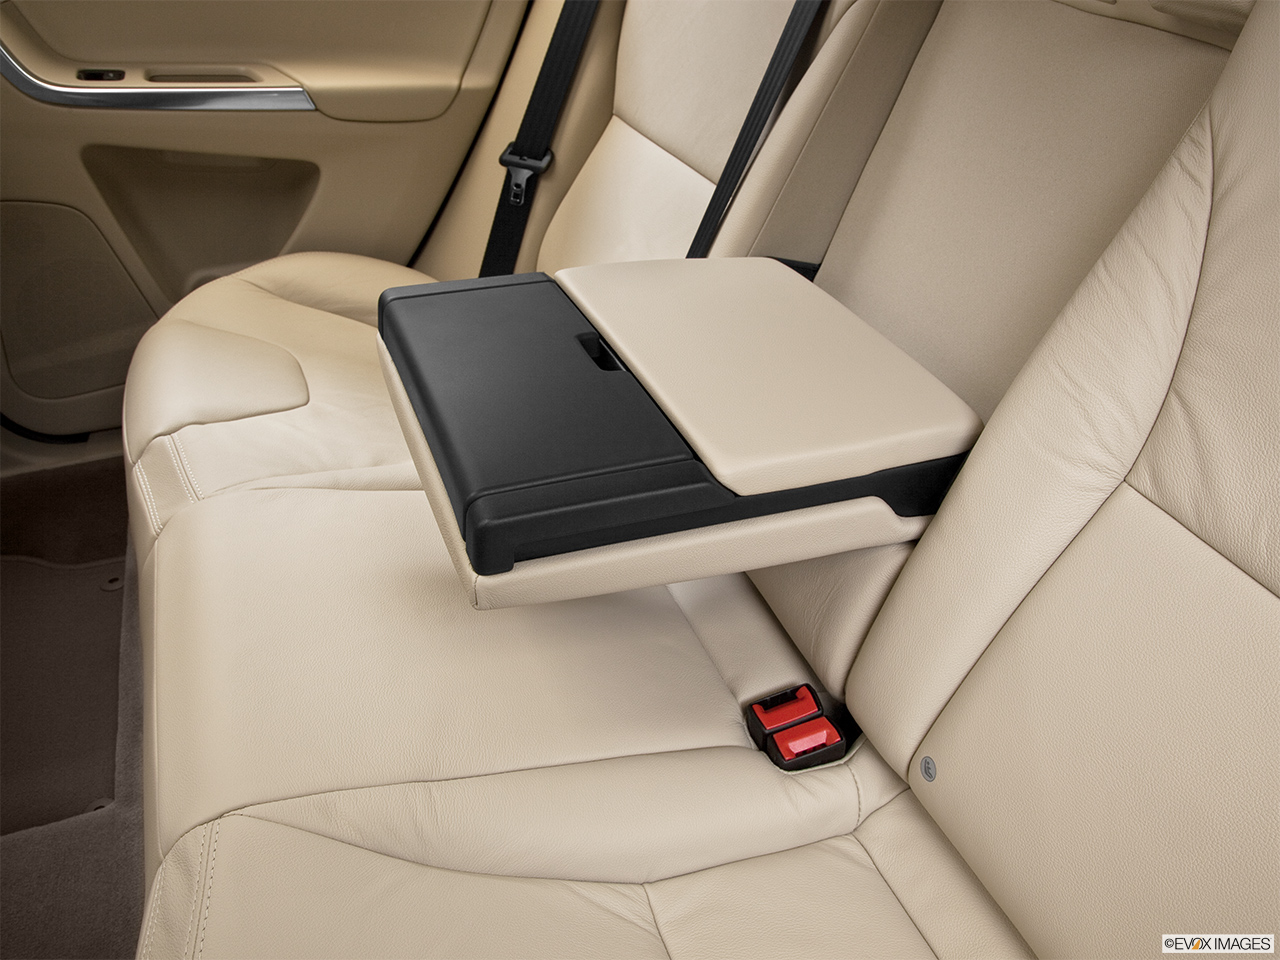 2013 Volvo XC60 3.2 FWD Premier Plus Rear center console with closed lid from driver's side looking down.